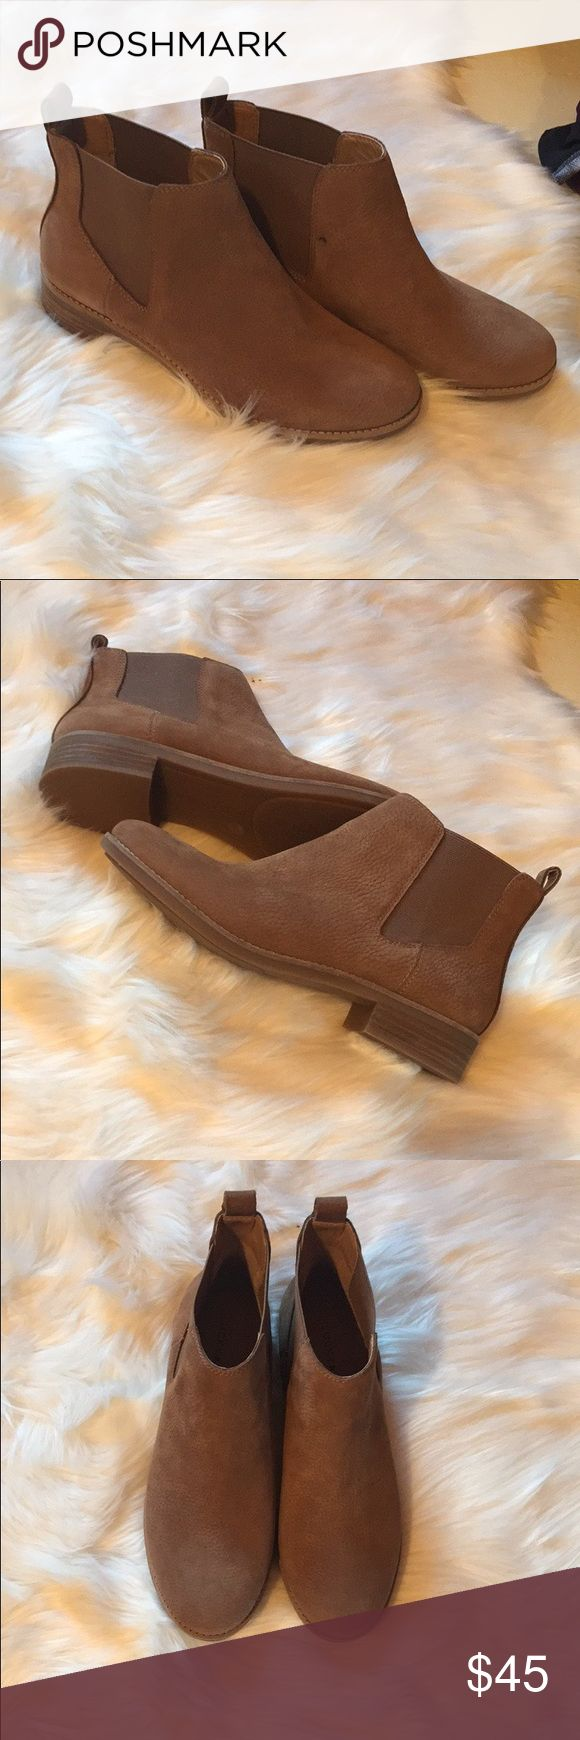 🆕 NWOT Lucky Brand booties 🍀💋 Adorable chestnut colored booties with a forgiving elastic perfect for skinny jeans or thicker socks. Never worn. The only flaw is the small dot seen in the 4th pic. Famous lucky brand quality 😍♥️ Lucky Brand Shoes Ankle Boots & Booties